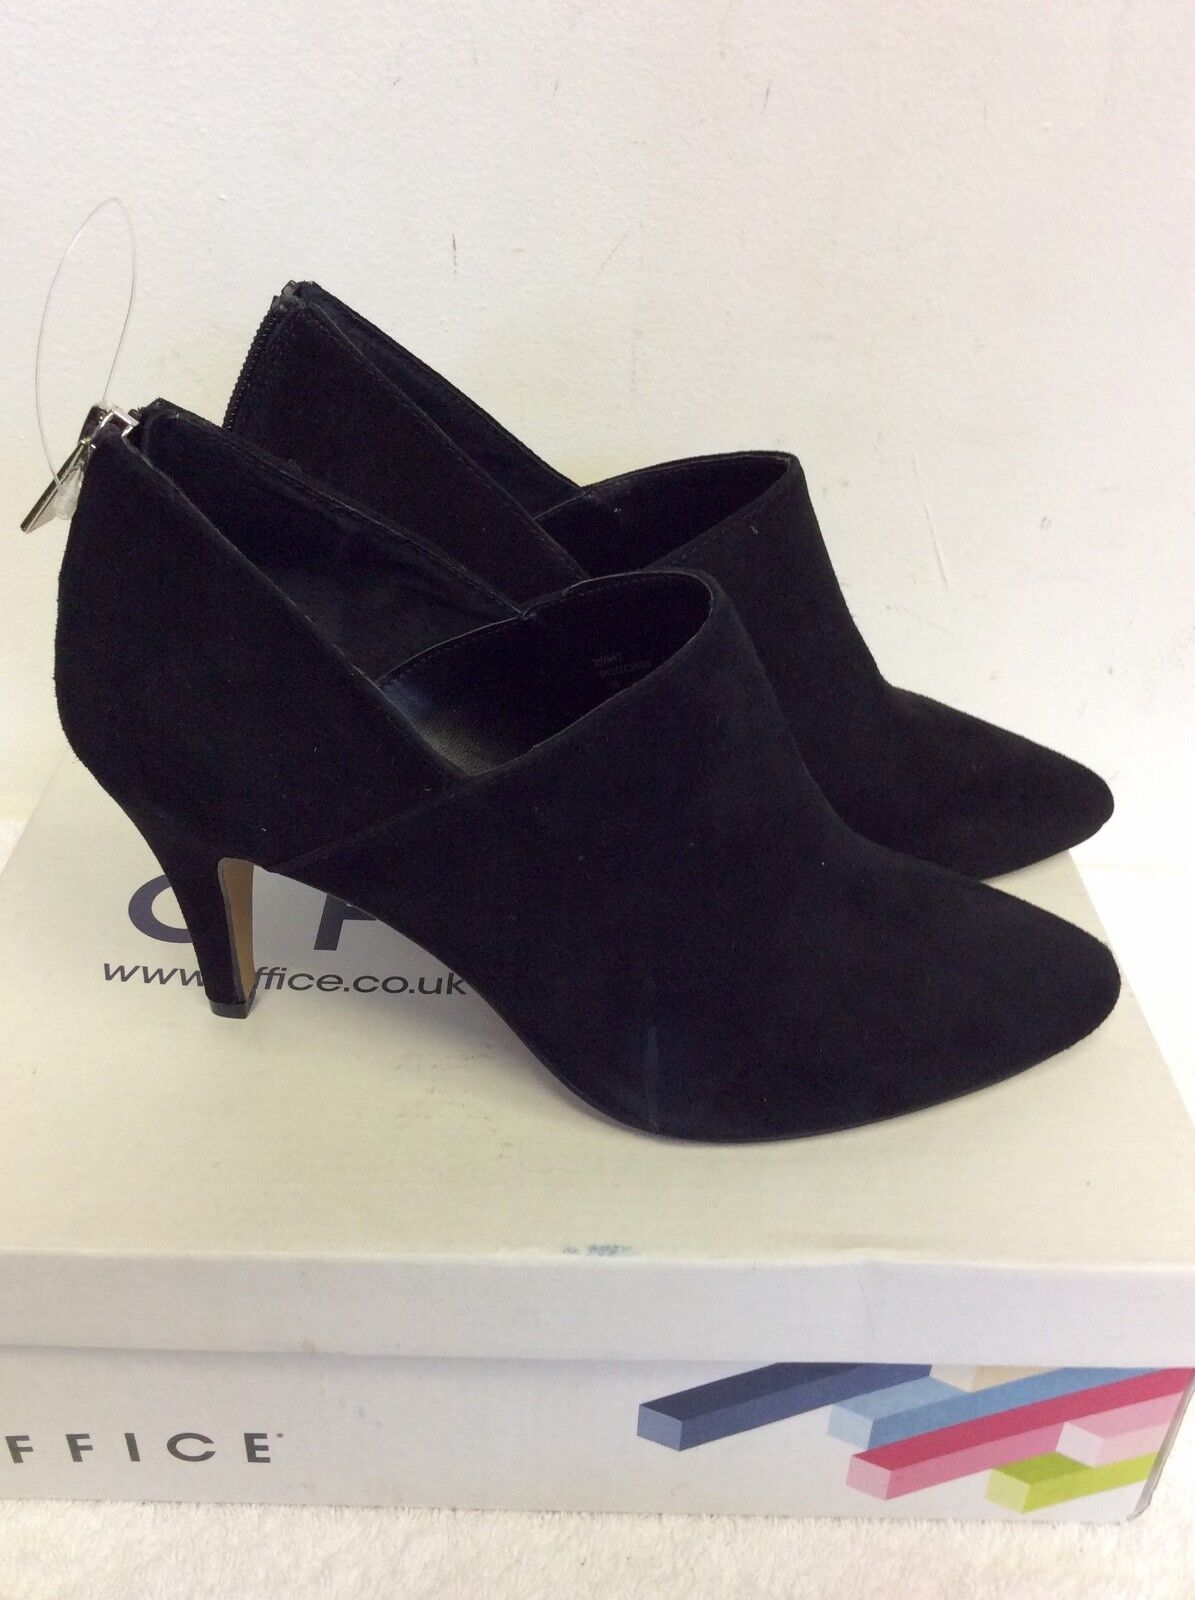 BRAND NEU OFFICE BLACK SUEDE HEEL FAITHFUL DRESSY SHOE BOOTS SIZE 5/38 COST